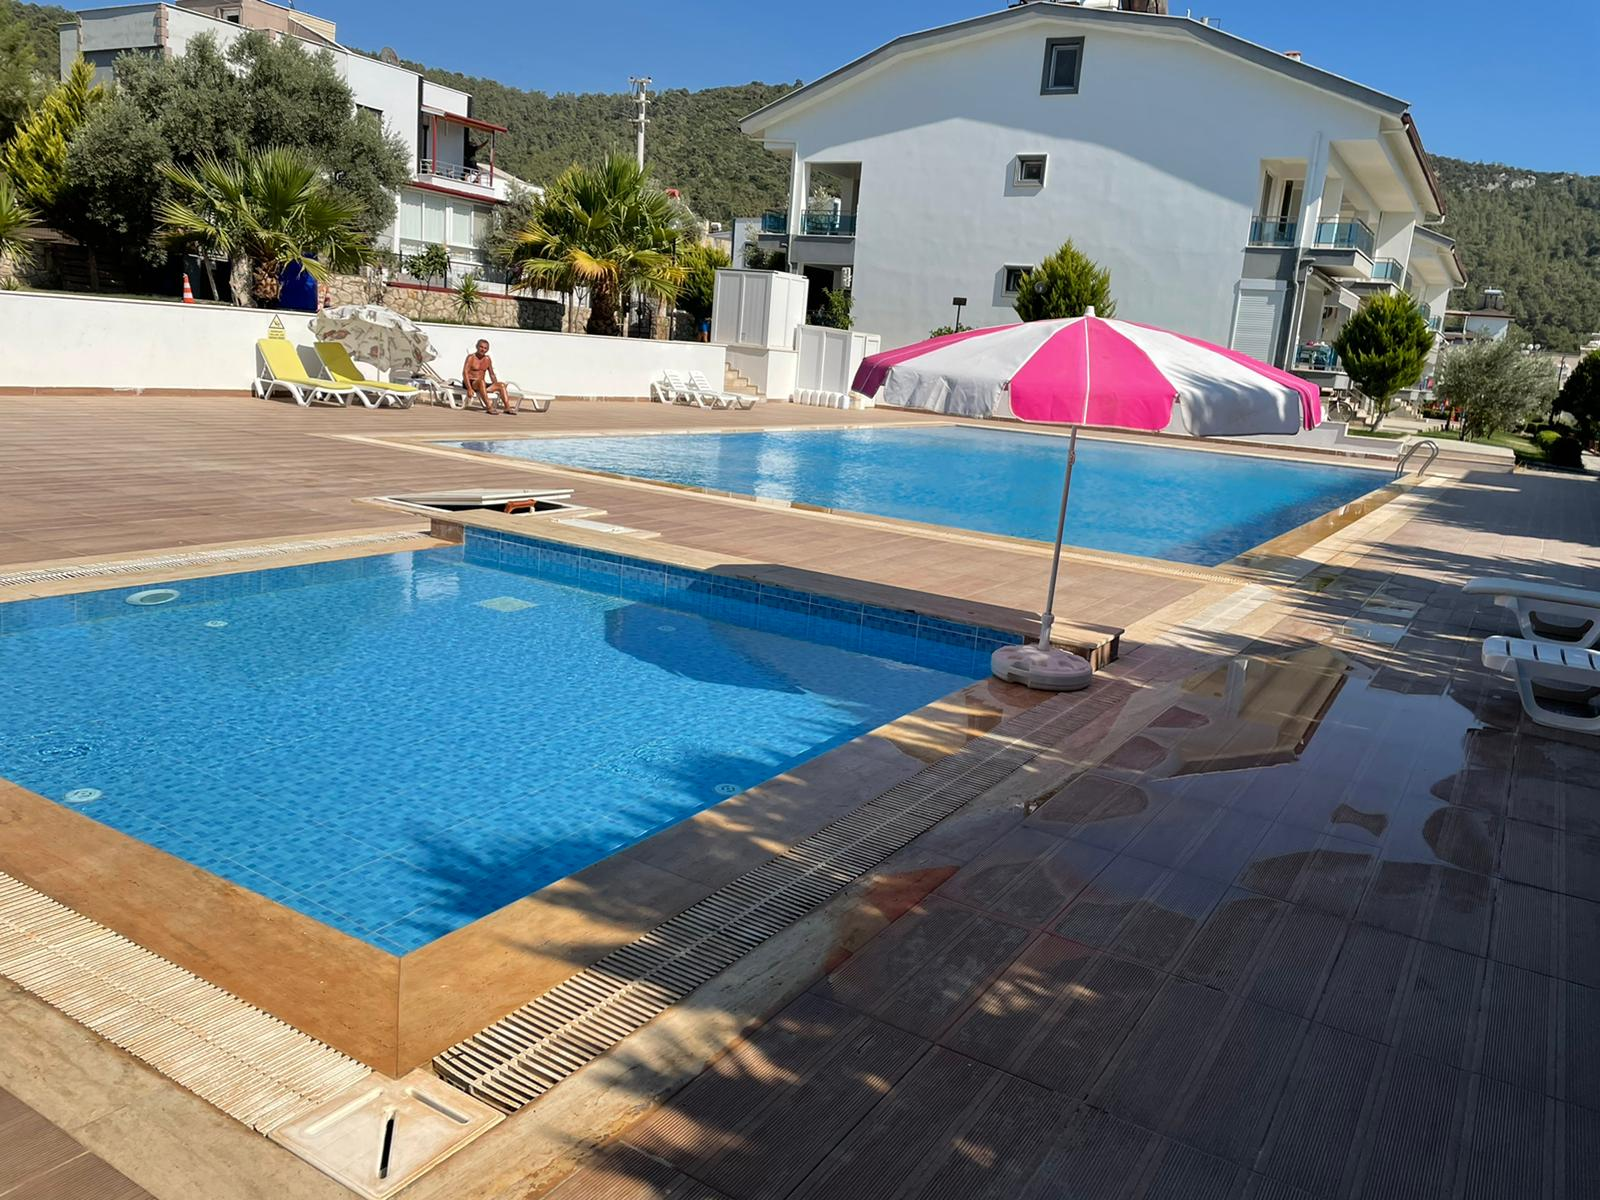 Lovely Sea View Villa in Akbuk – Family Beach Holiday Home in Turkey